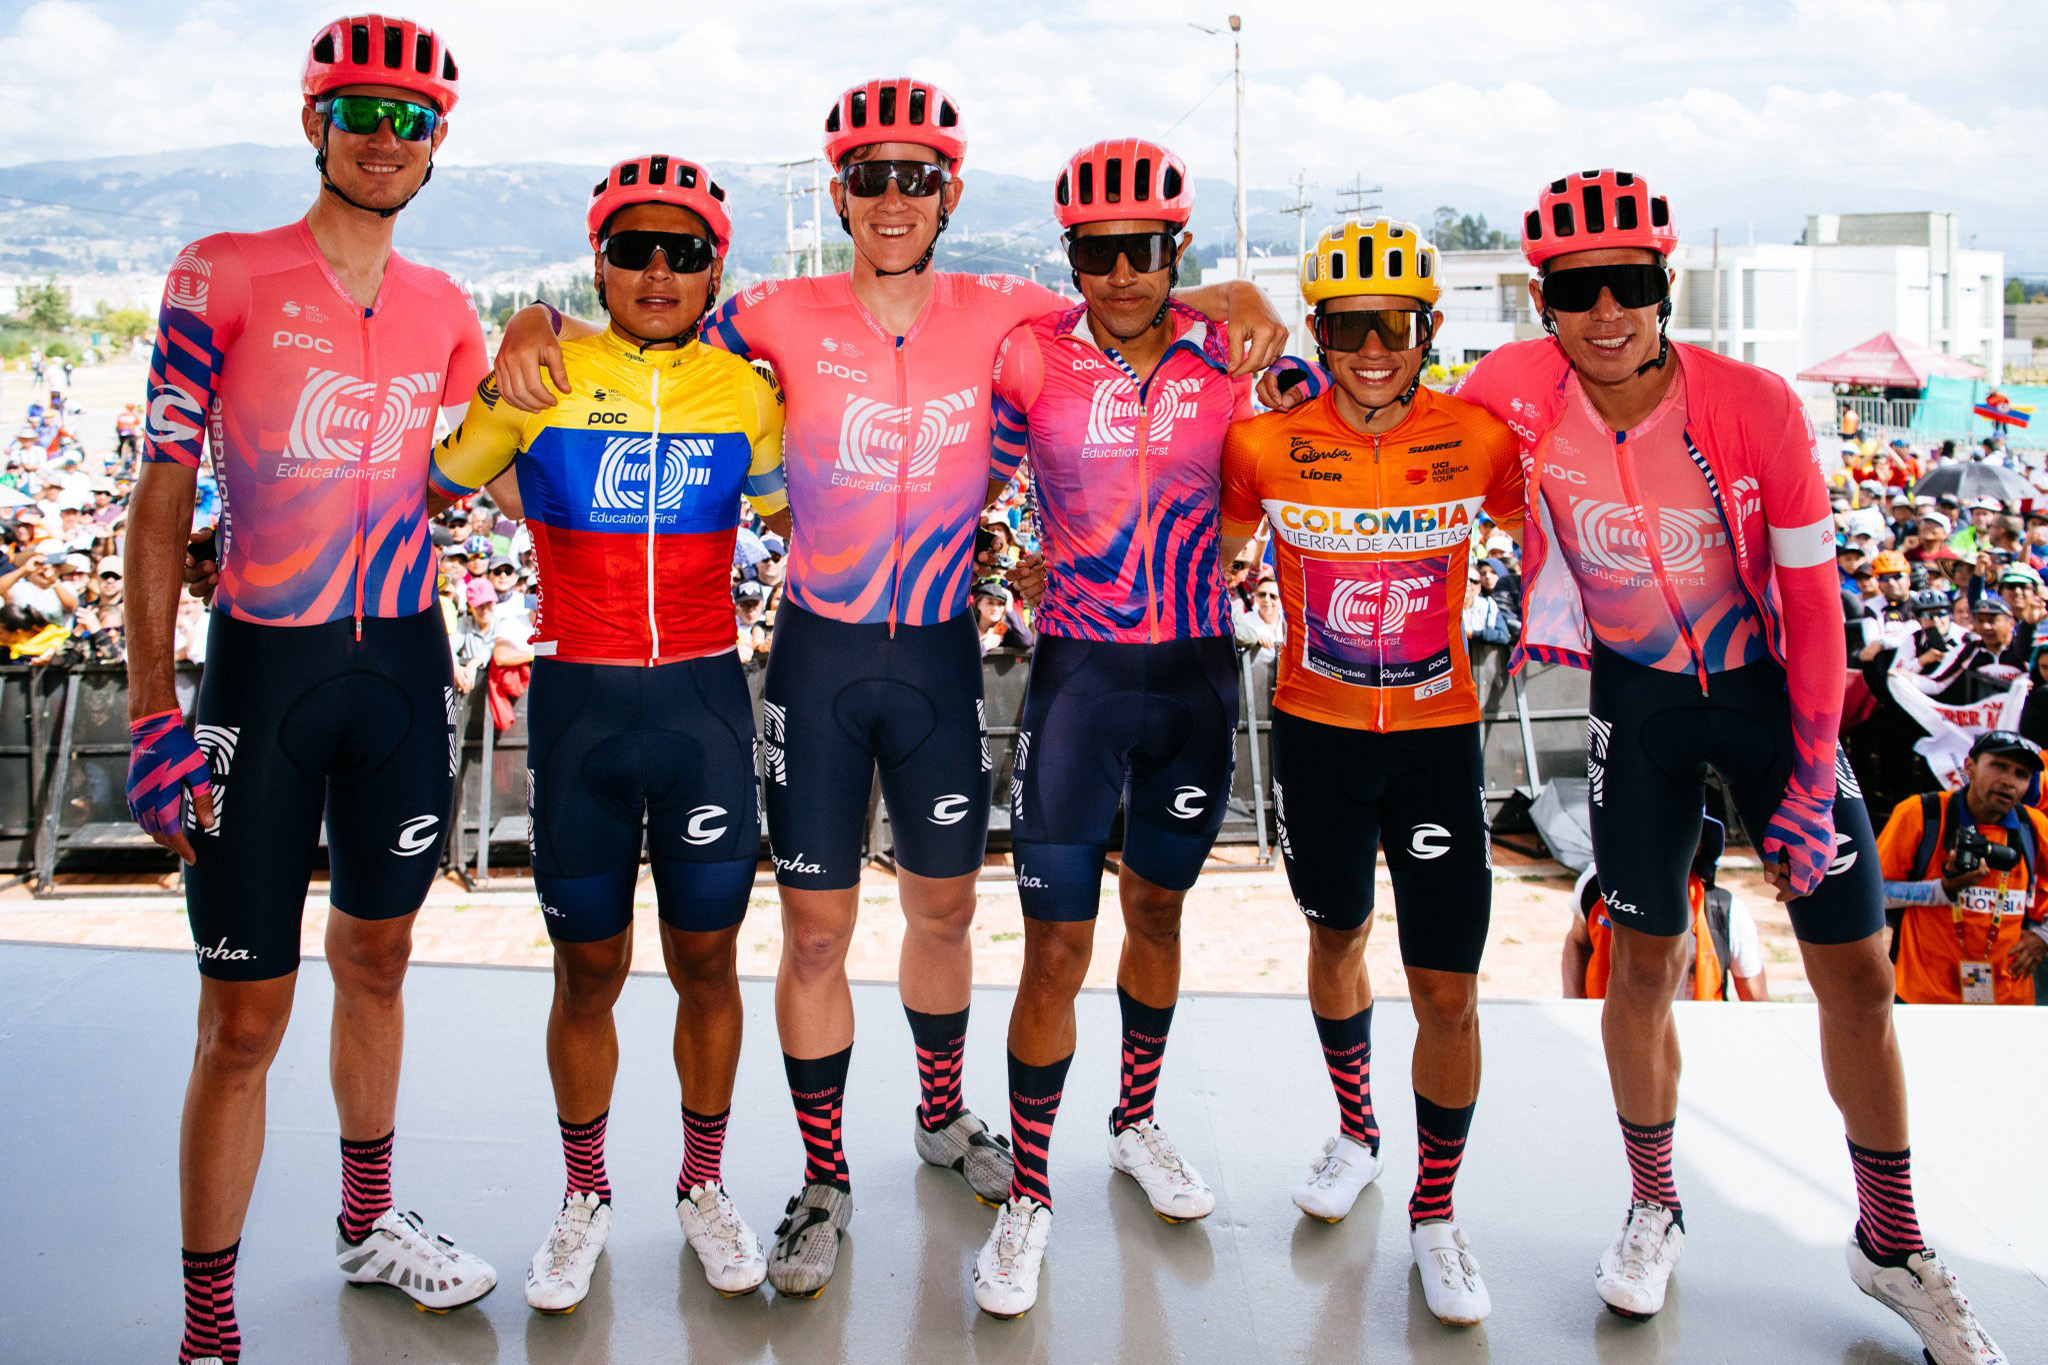 Triplete del EF Cycling Team en el Tour de Colombia 2.1